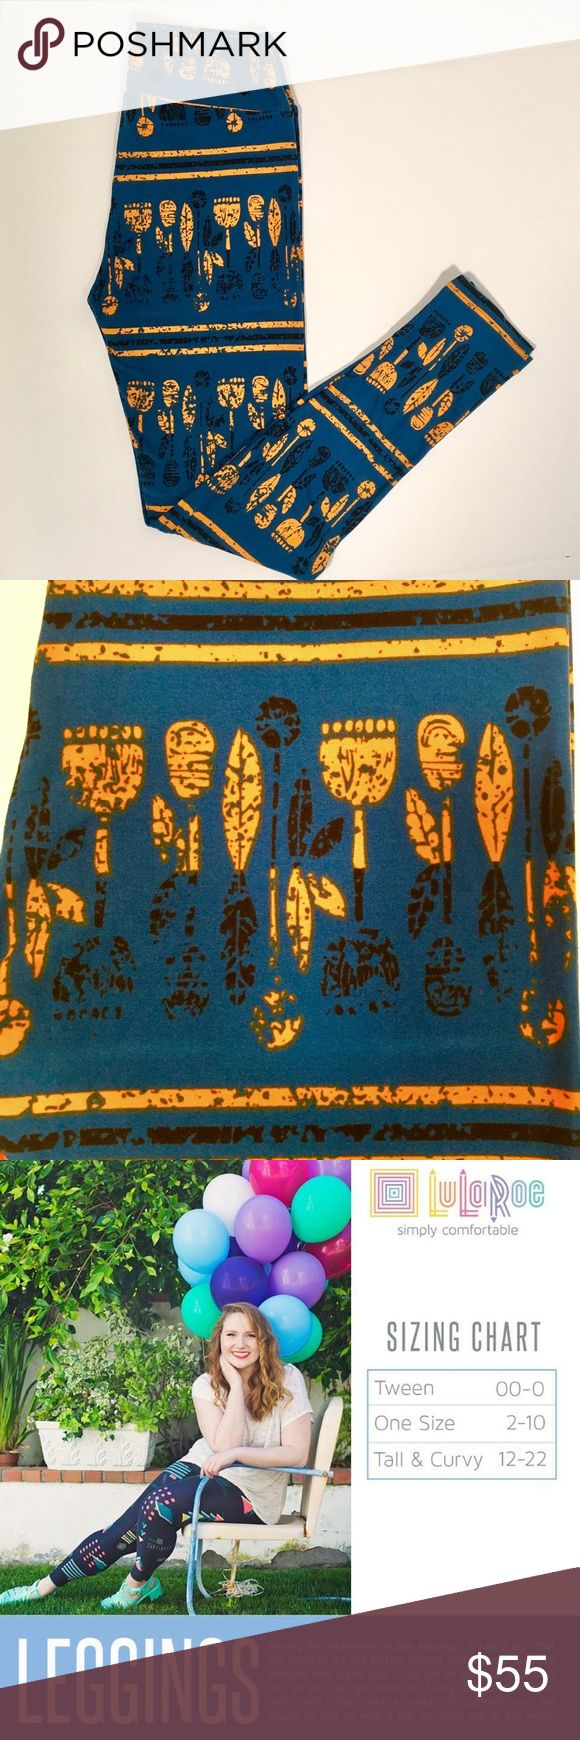 NWT LuLaRoe Aztec Tribal Leggings One Size Brand new with tags! Never worn! Hard to find patten. LuLaRoe ink blue one size (2-10) leggings with Native American, Aztec, Tribal pattern in gold yellow and black. LuLaRoe Pants Leggings